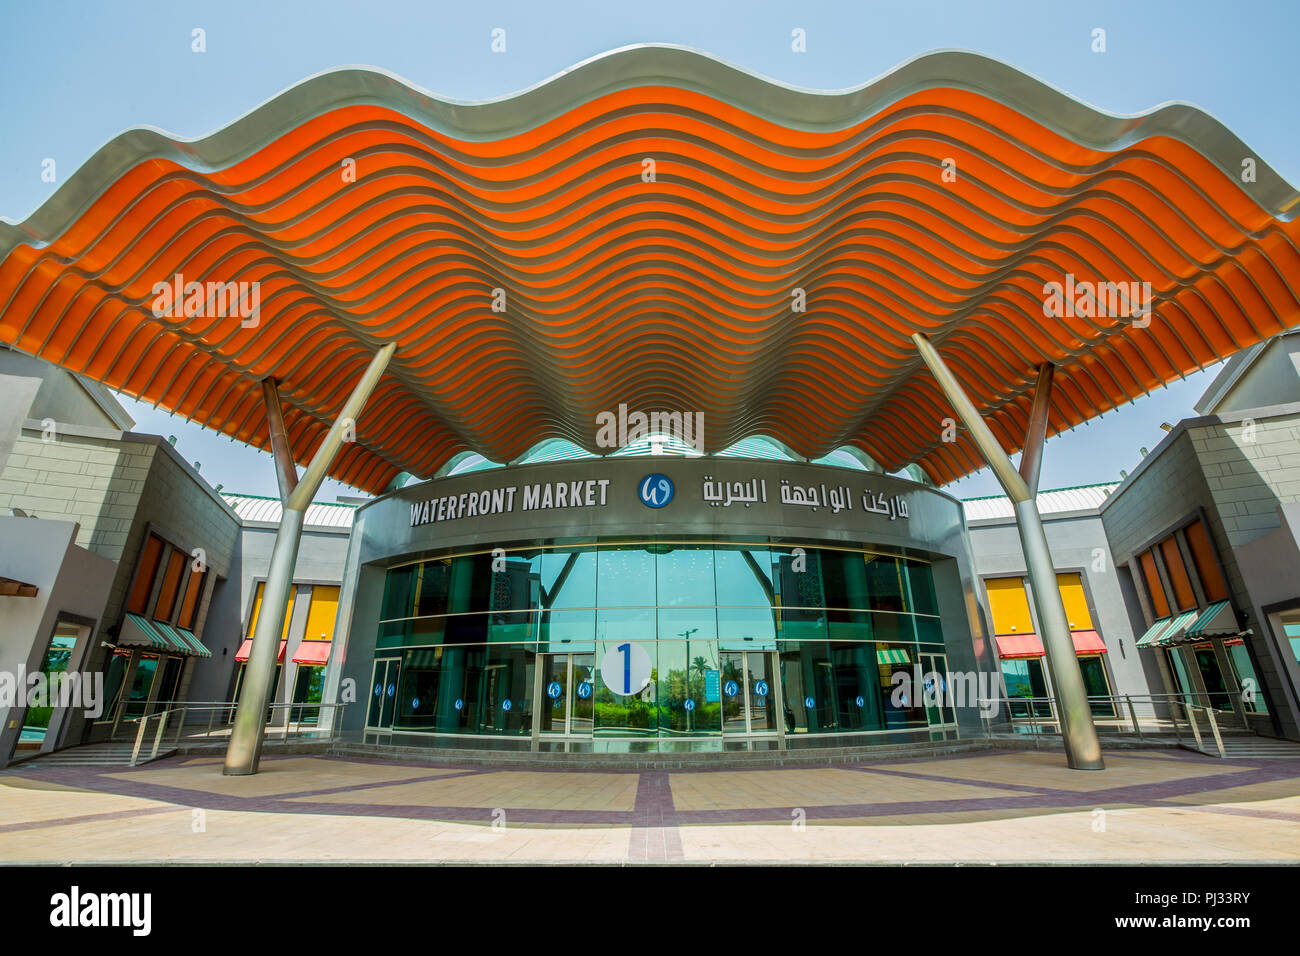 Dubai Waterfront Market Stock Photo: 217657103 - Alamy